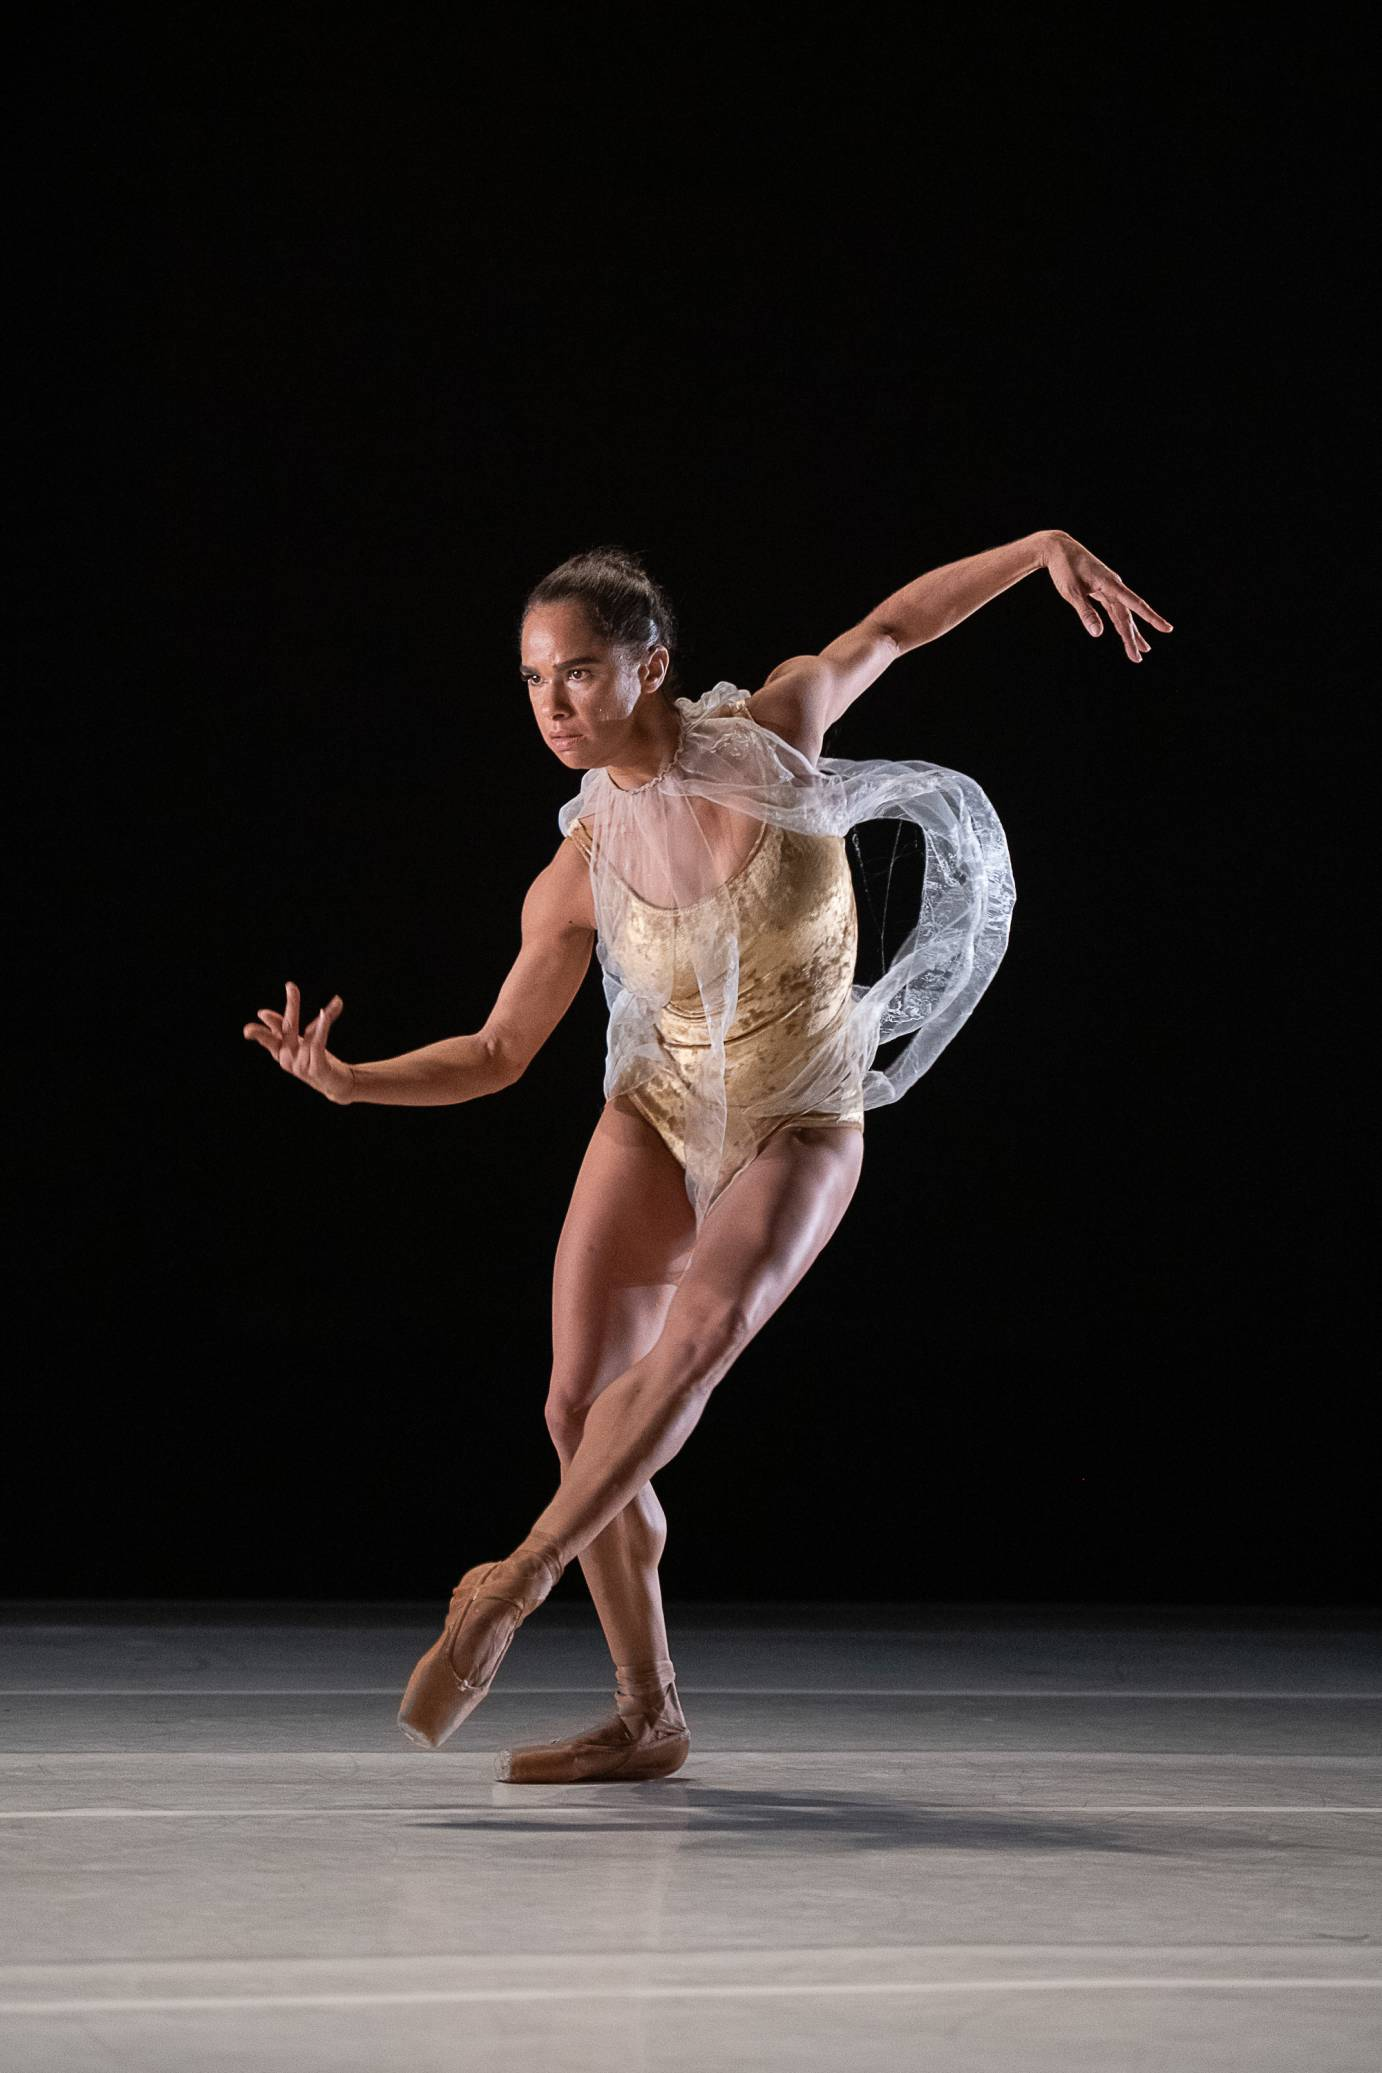 Misty Copeland poses architecturally